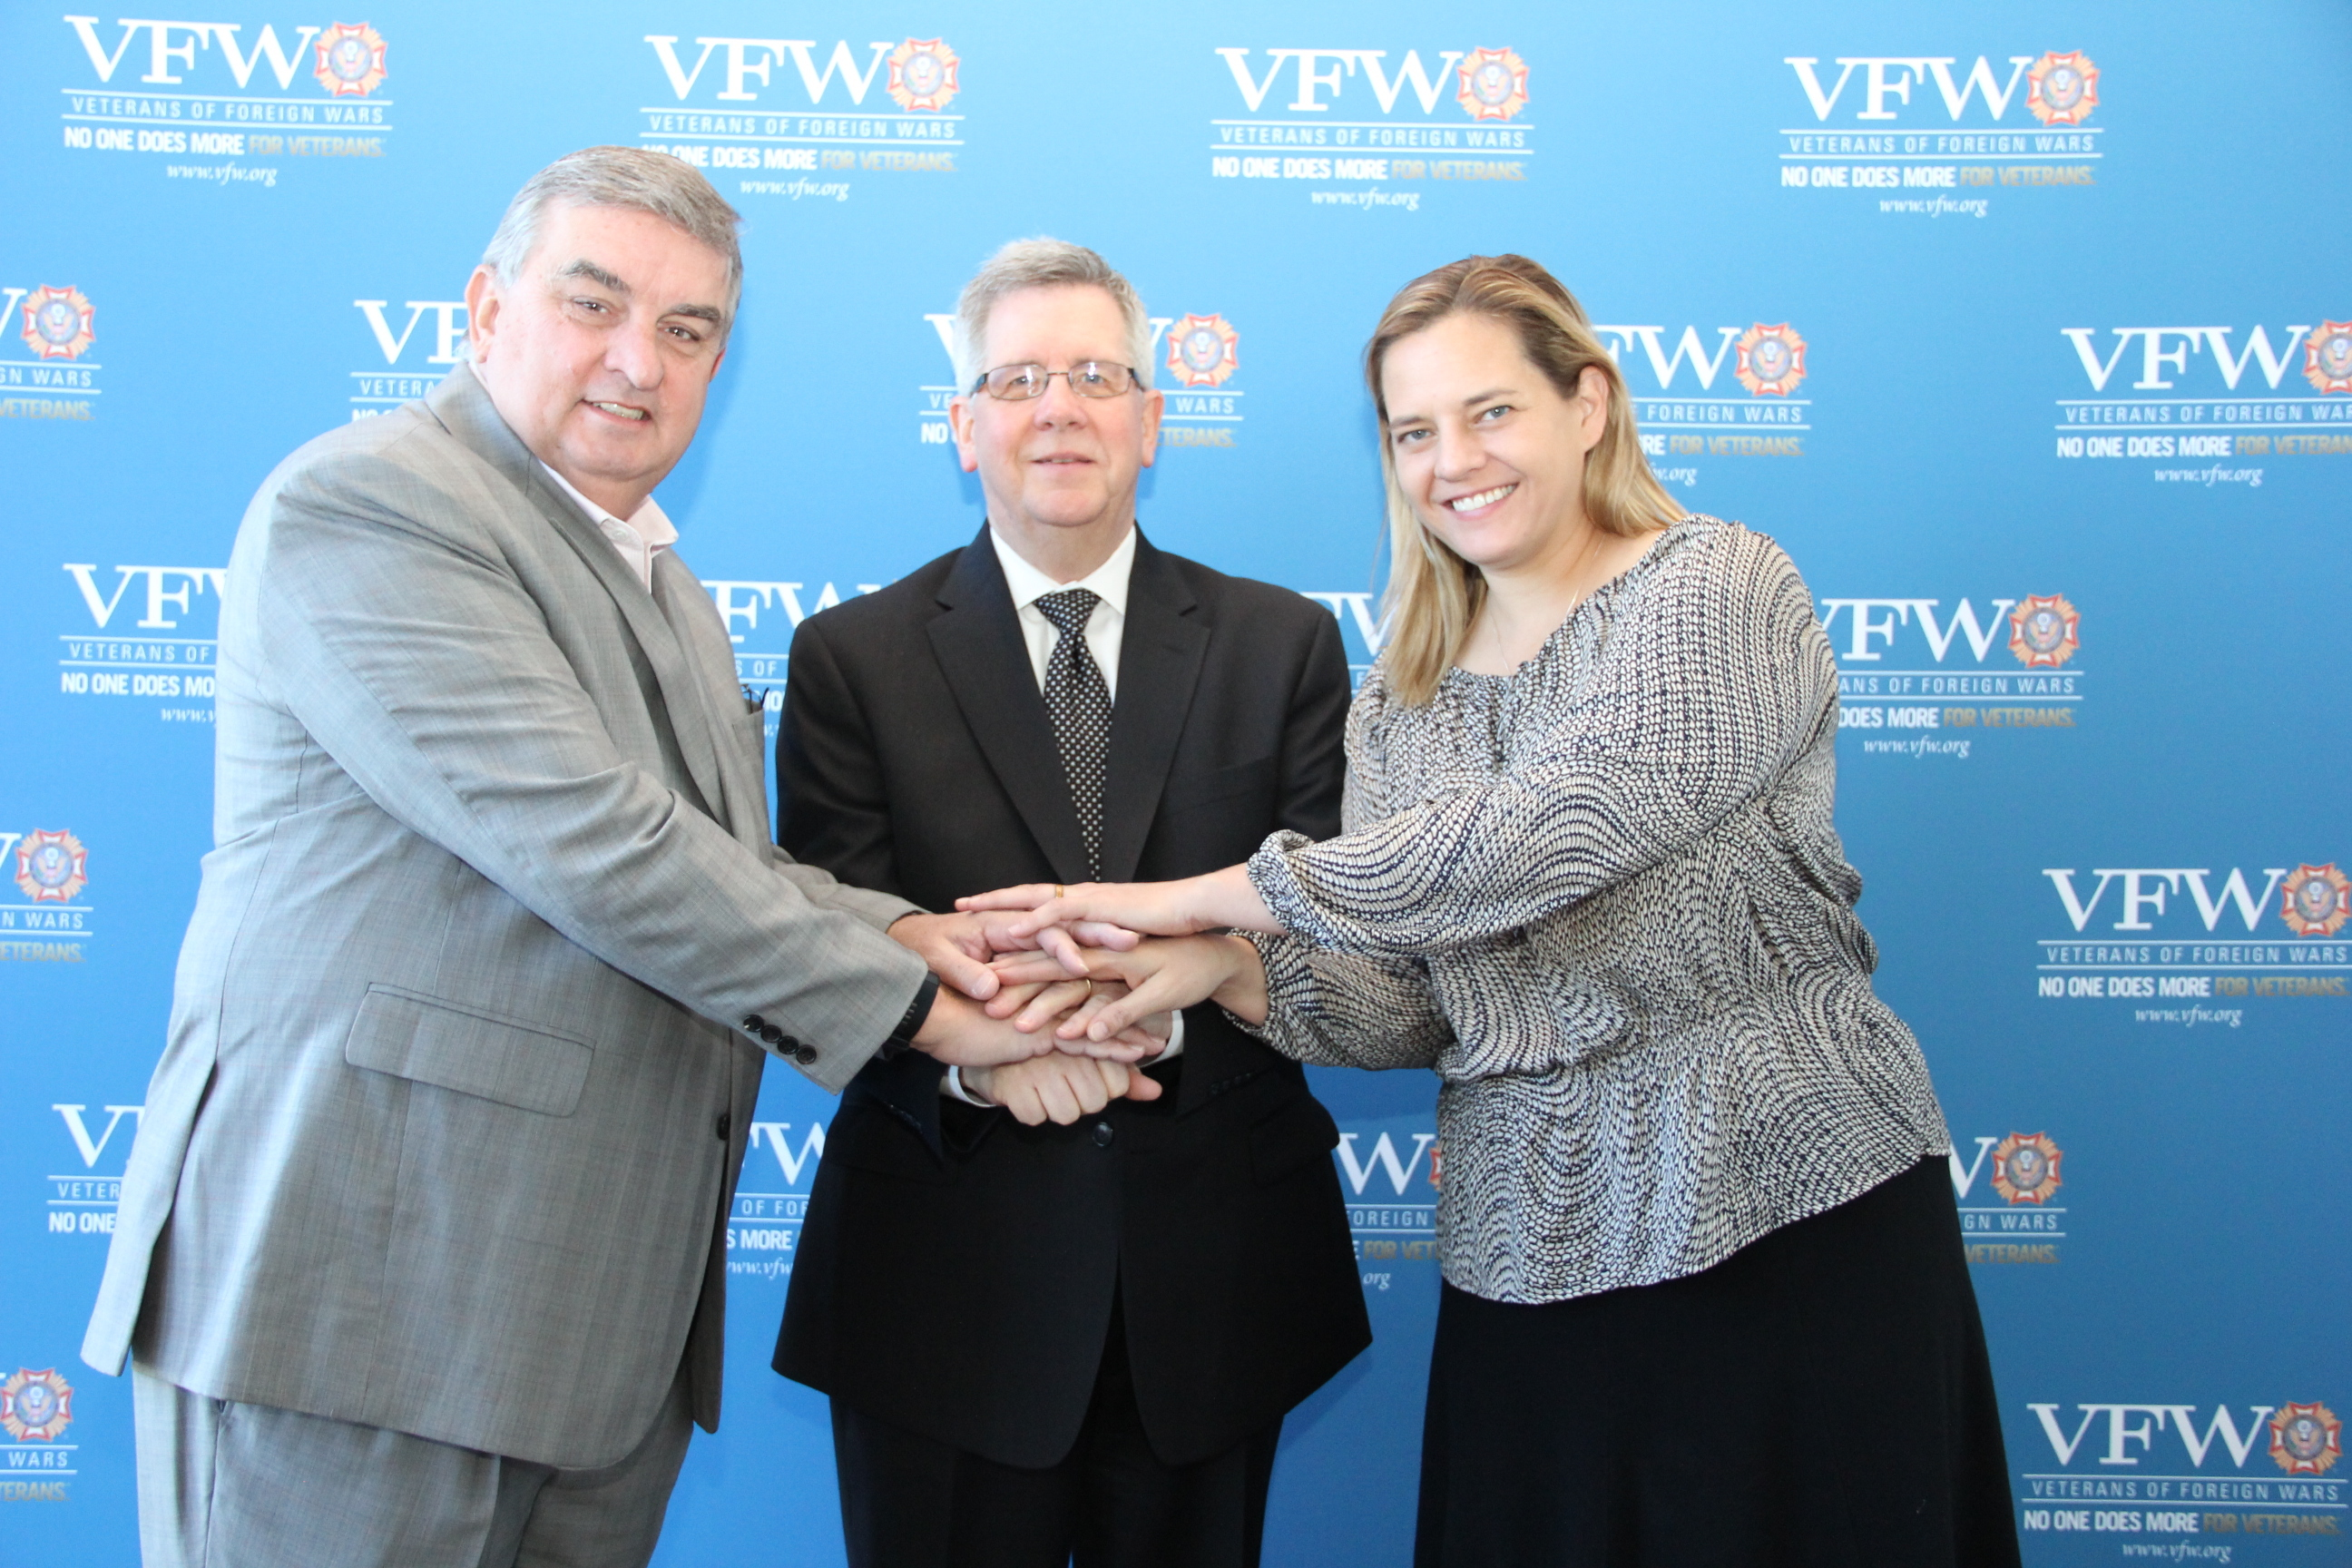 Celebrating a collaborative agreement of their three organizations to help improve mental health care for Veterans are, from left, Brian Duffy, Commander-in-Chief, Veterans of Foreign Wars of the U.S.; Dr. Chet Robson, Medical Director, Clinical Programs and Quality, Walgreens; and Dr. Caitlin Thompson, Executive Director, Office of Suicide Prevention, U.S. Department of Veterans Affairs. The three announced the initiative at a national meeting of VFW officers Saturday, May 6, in Kansas City, Missouri. (Photo: Business Wire)